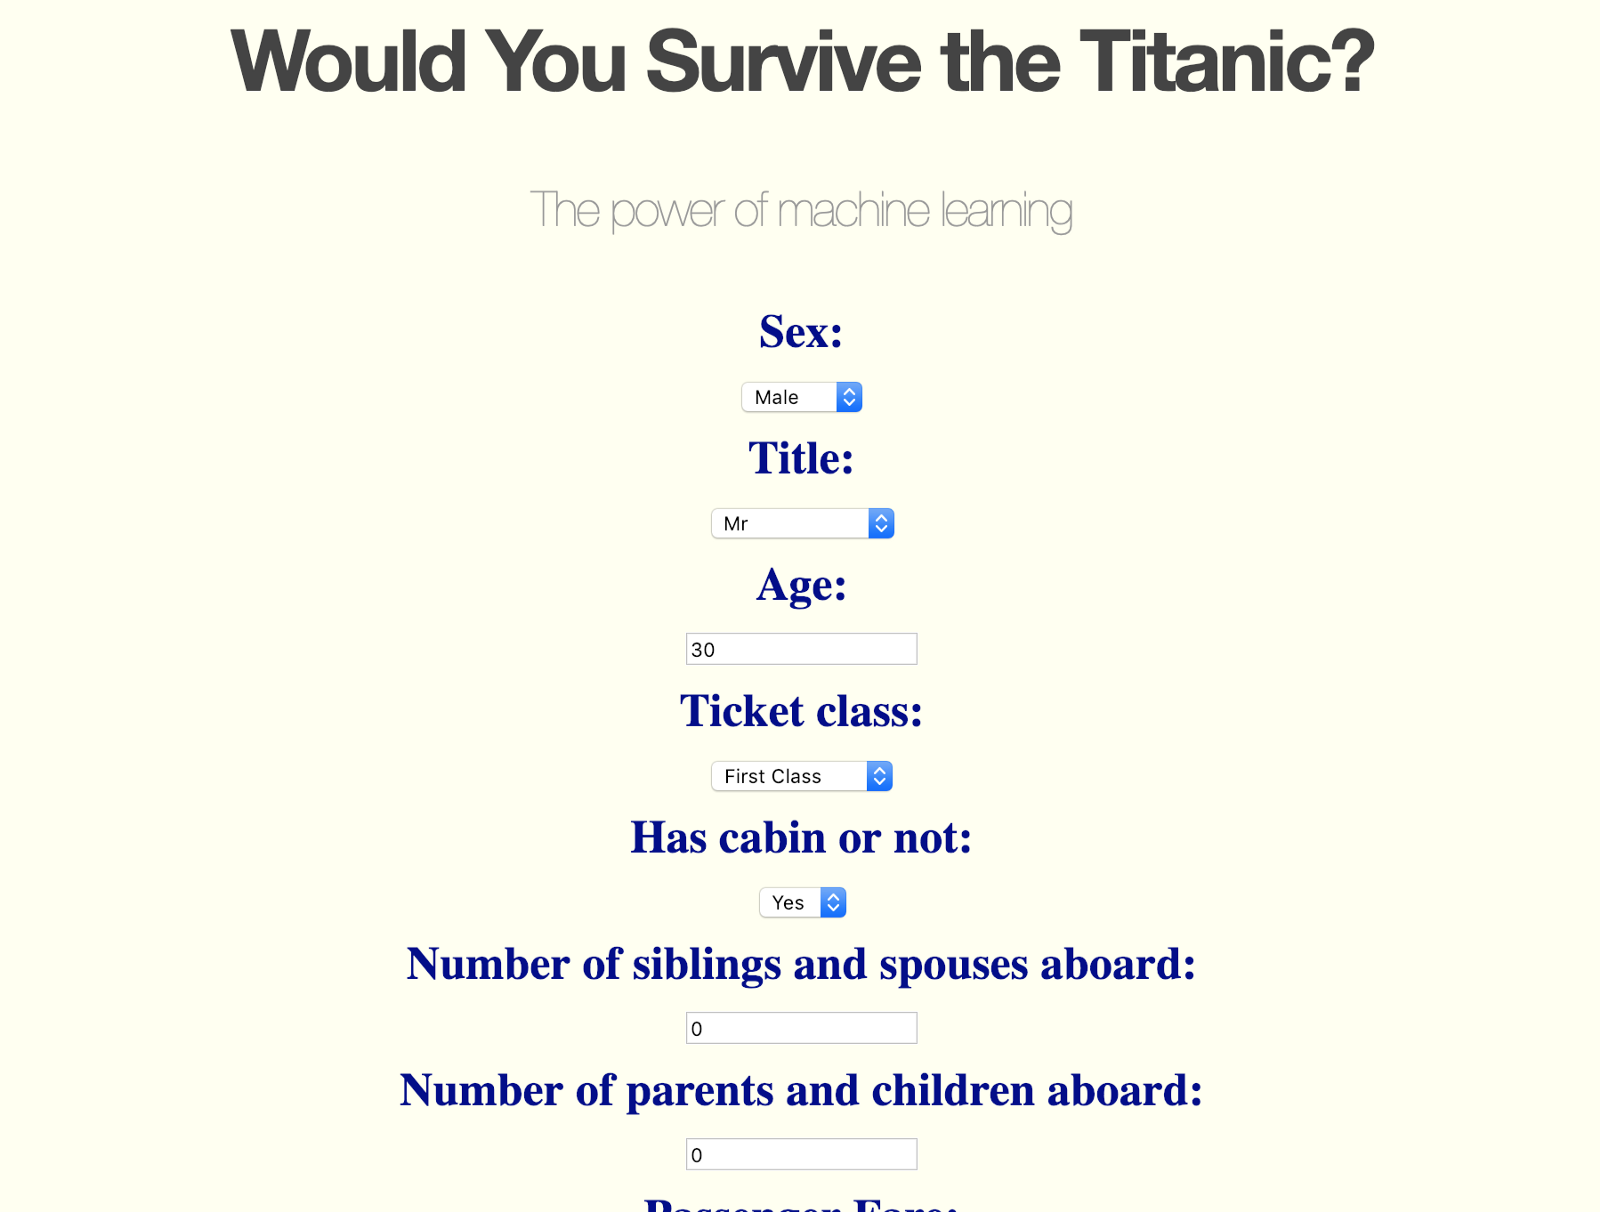 Would You Survive the Titanic? - By Eden